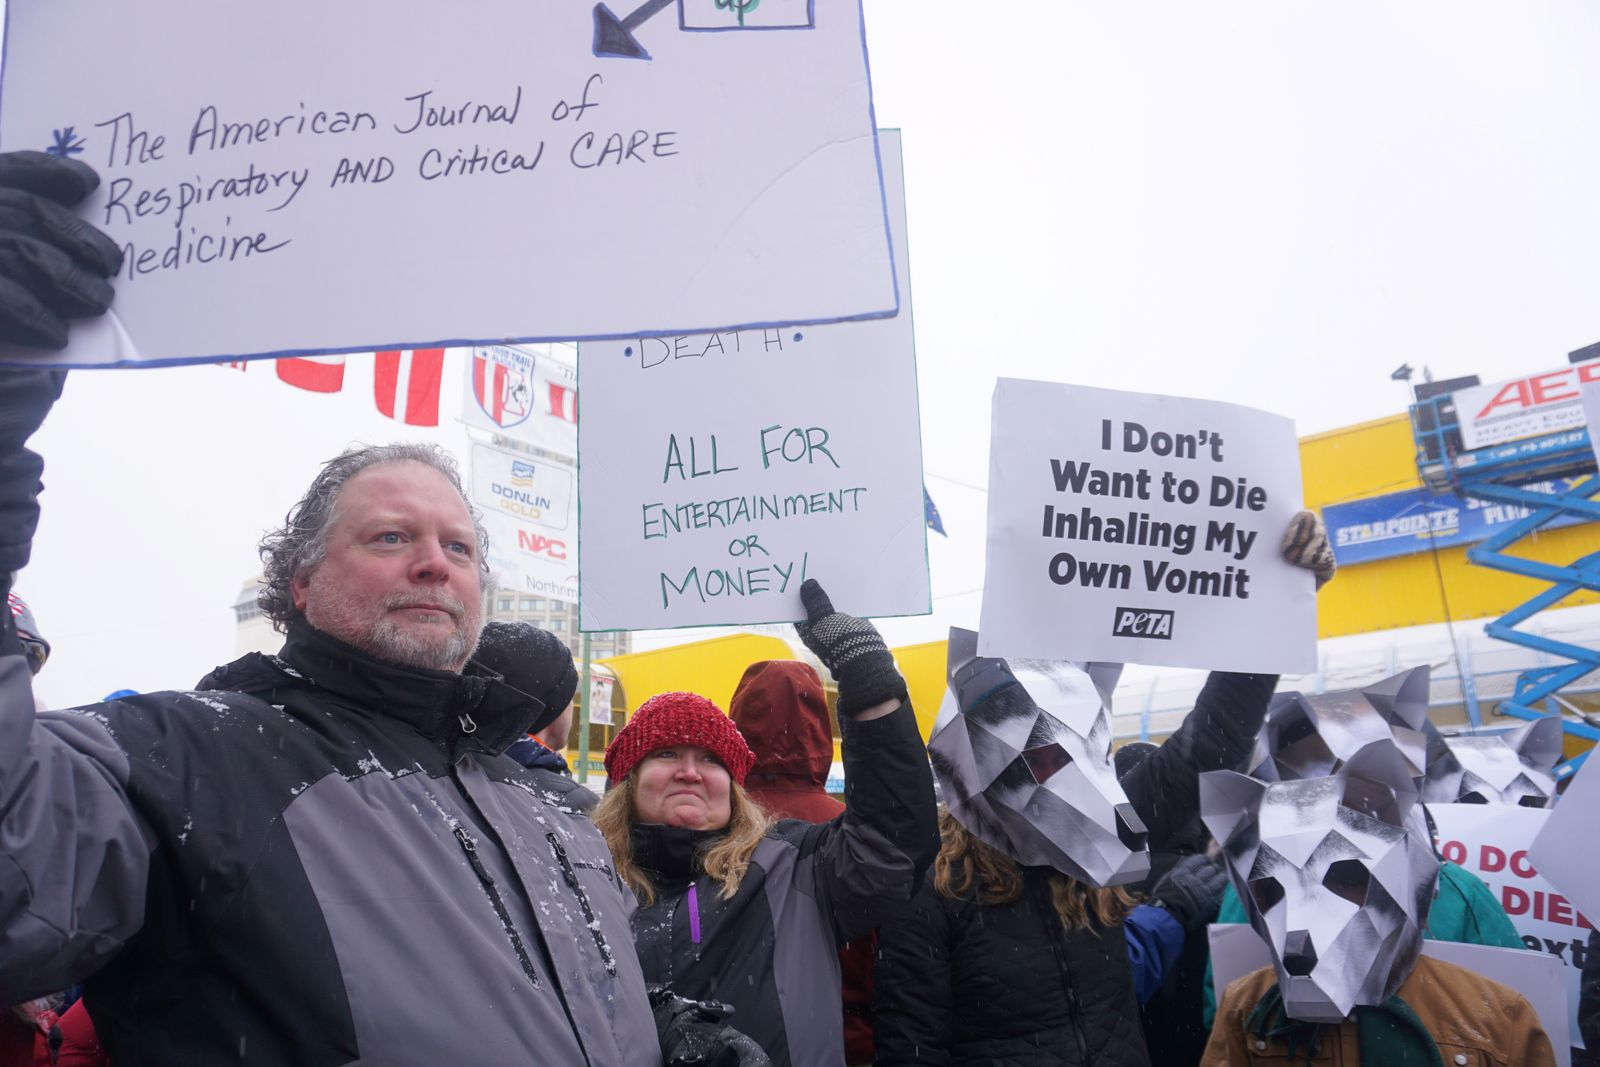 Pat Hartley and Jessica Hartley of Anchorage, representing People for the Ethical Treatment of Animals (PETA), protest at the Anchorage ceremonial start of the 2020 Iditarod Trail Sled Dog Race